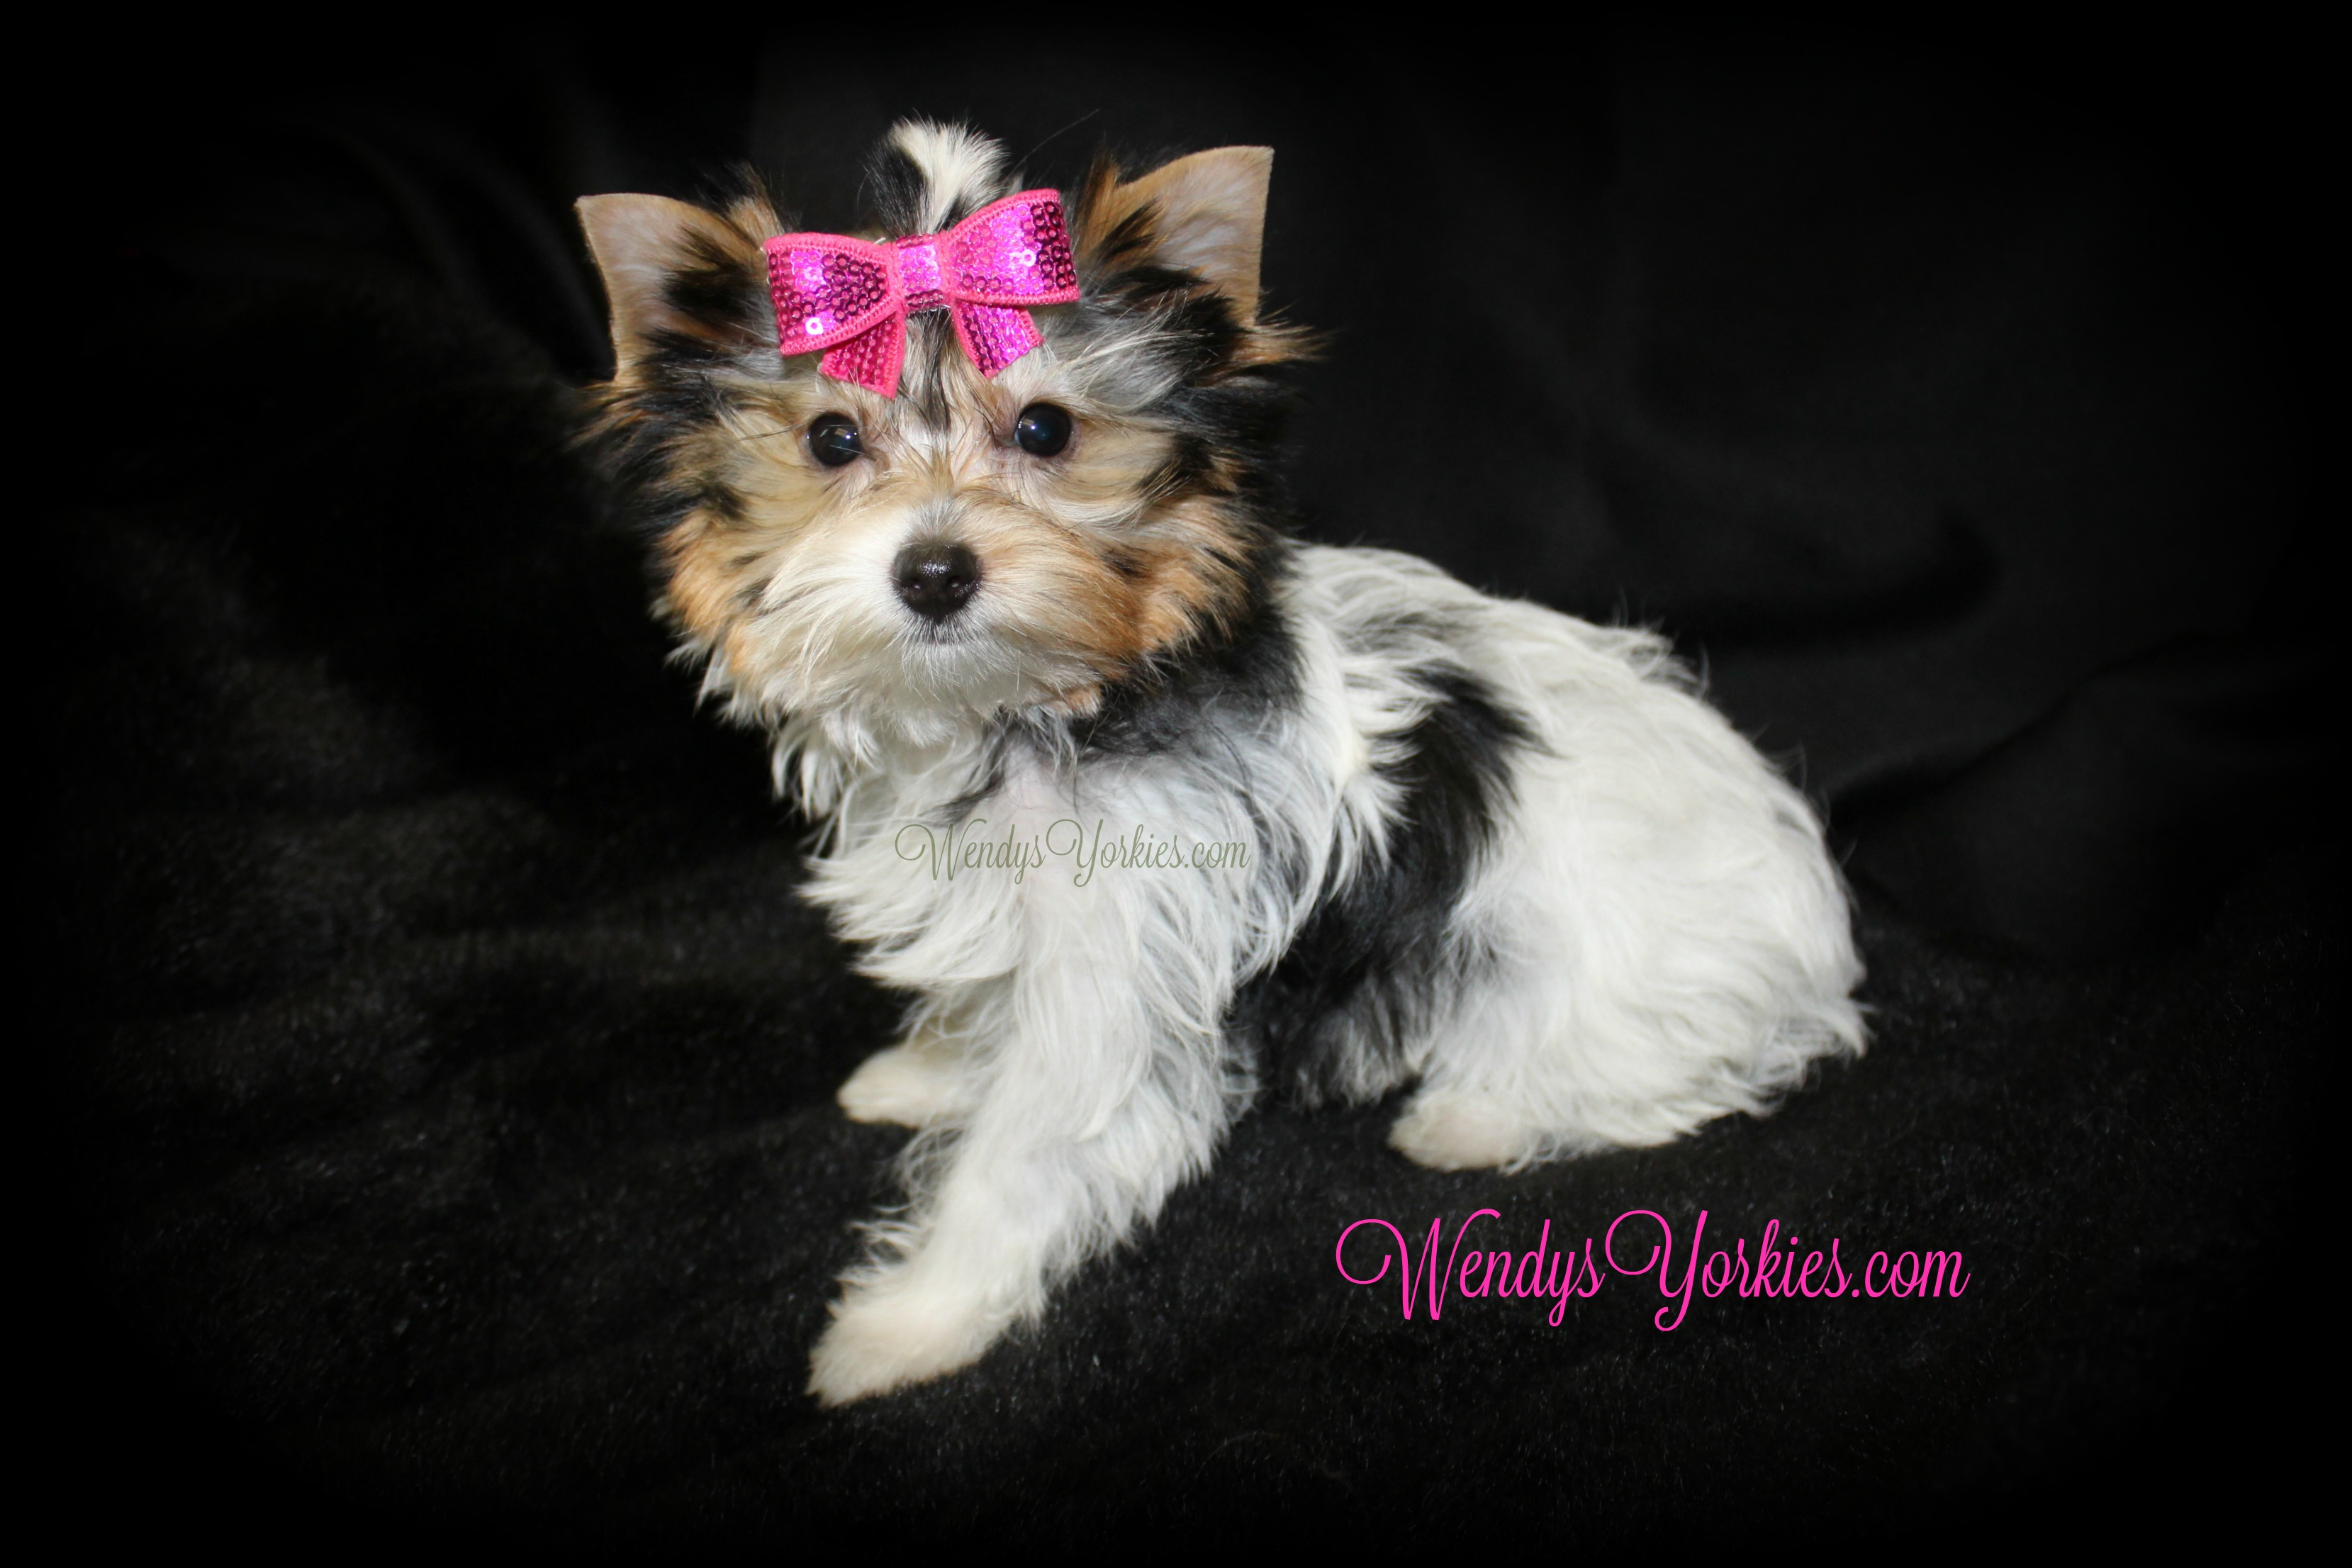 Teacup Toy Parti Yorkie puppy for sale, WendysYorkies.com, Daisypf1